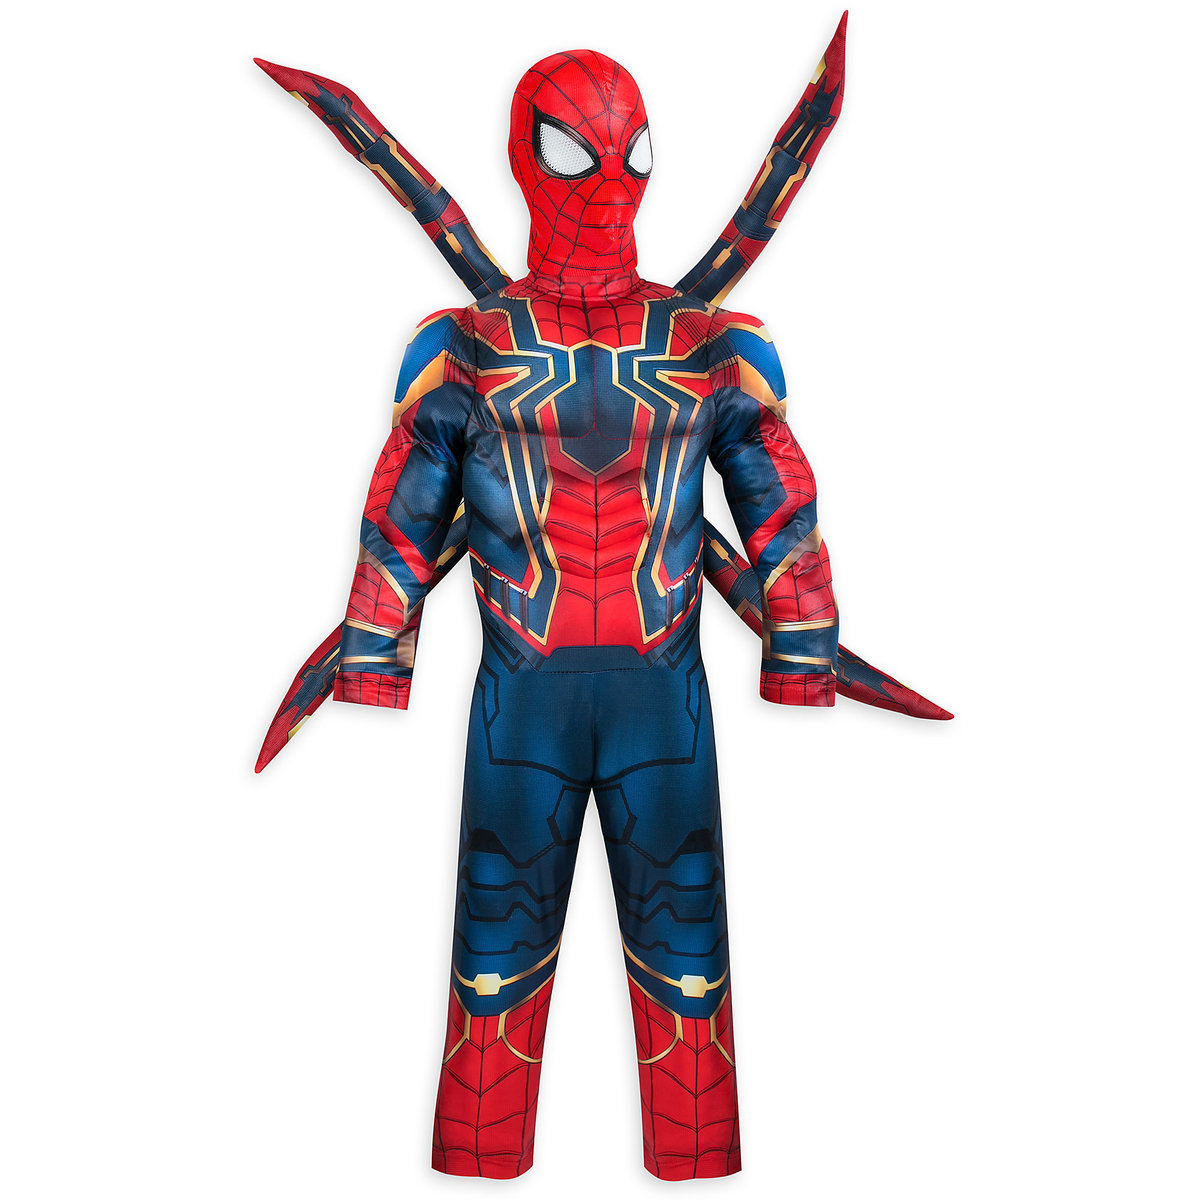 c9ef2acd50e49a Product Image of Iron Spider Costume for Kids - Marvel's Avengers: Infinity  War # 1